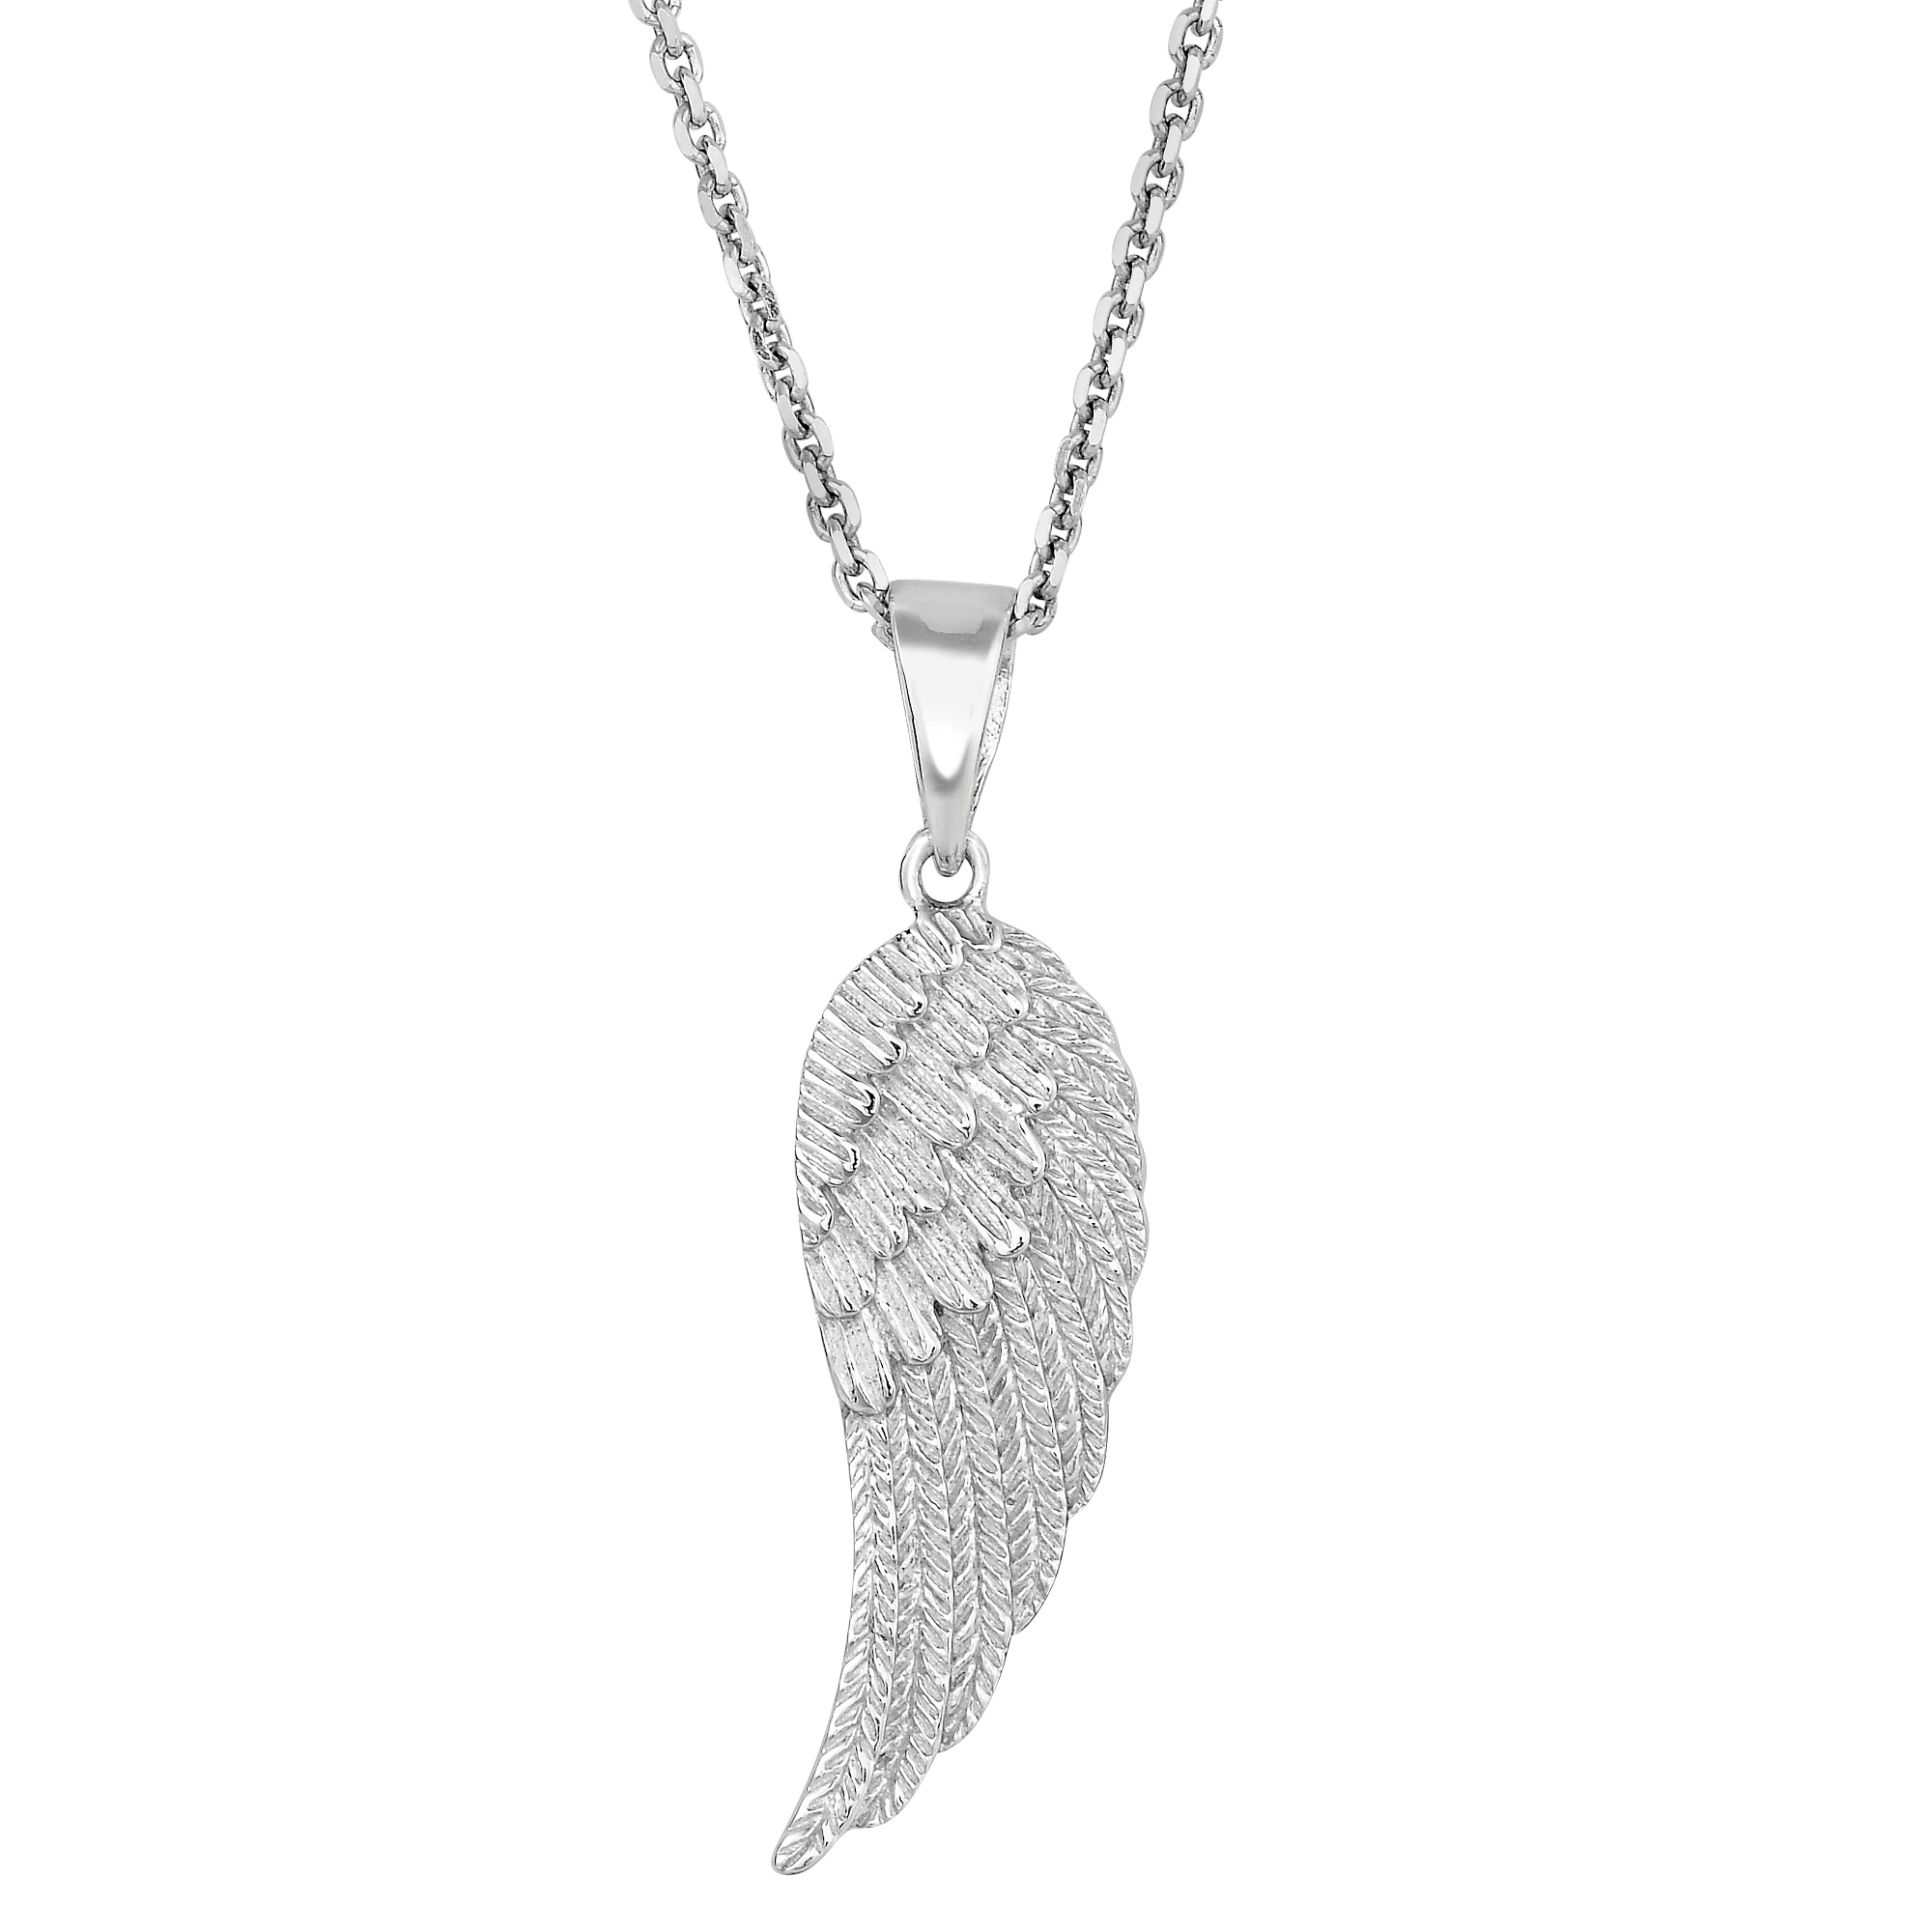 Sterling Silver Angel Wing Pendant Necklace 18 Inch